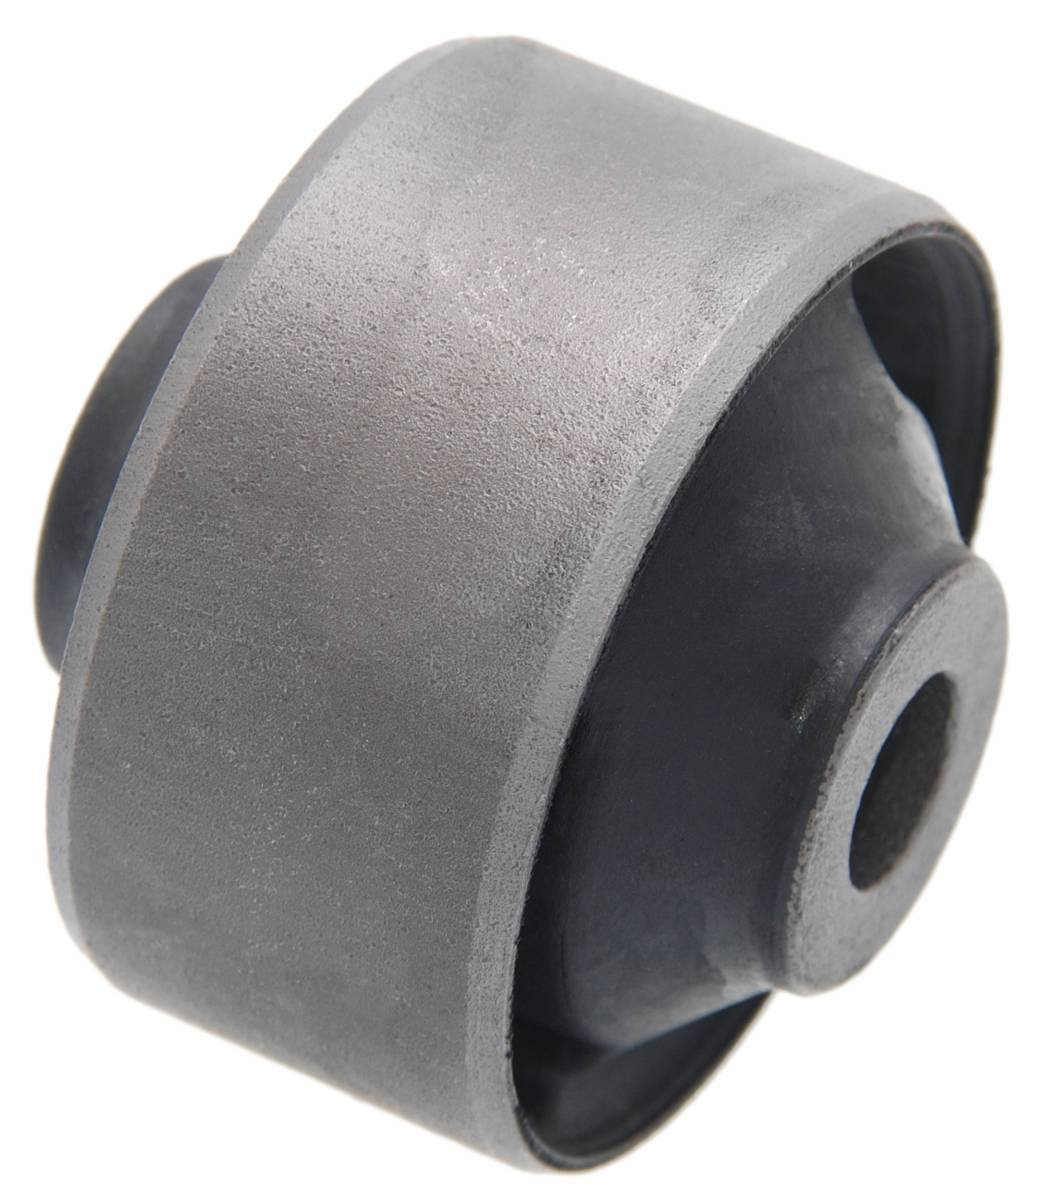 5475131G02 - Arm Bushing (for Front Differential Mount) For Nissan - Febest